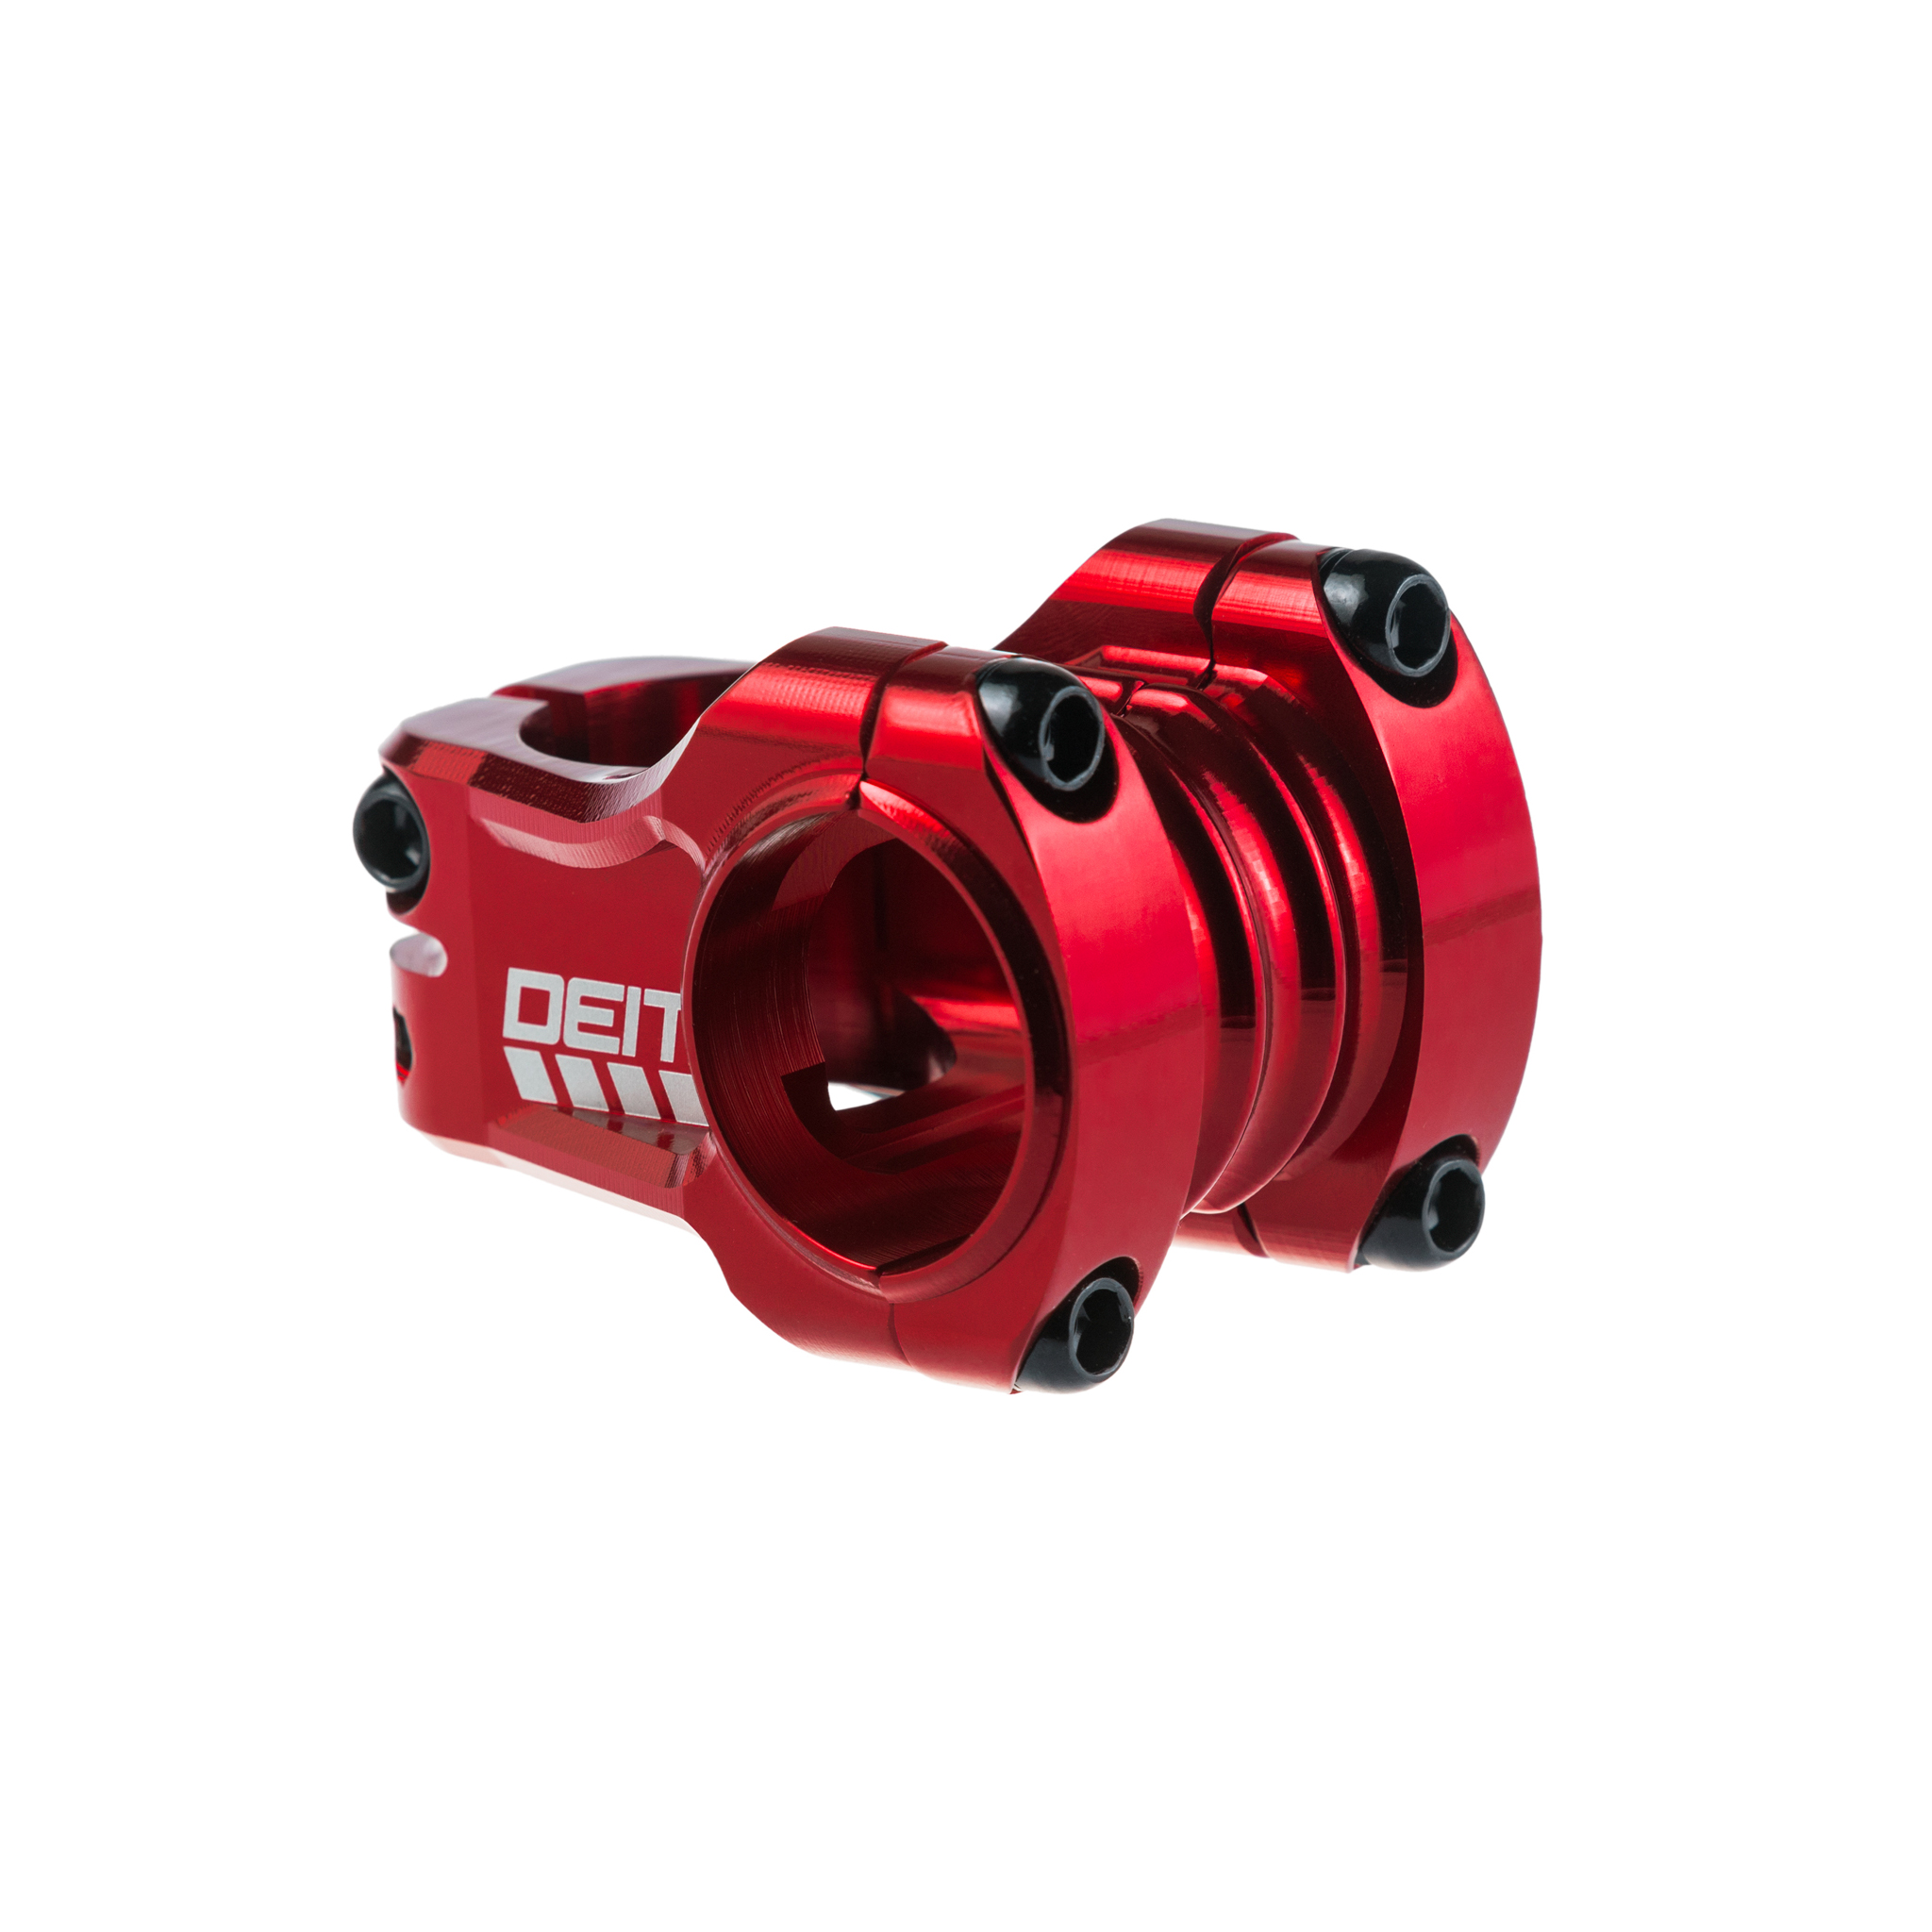 Copperhead 35mm 31.8 Stem - RED   exciting promotions